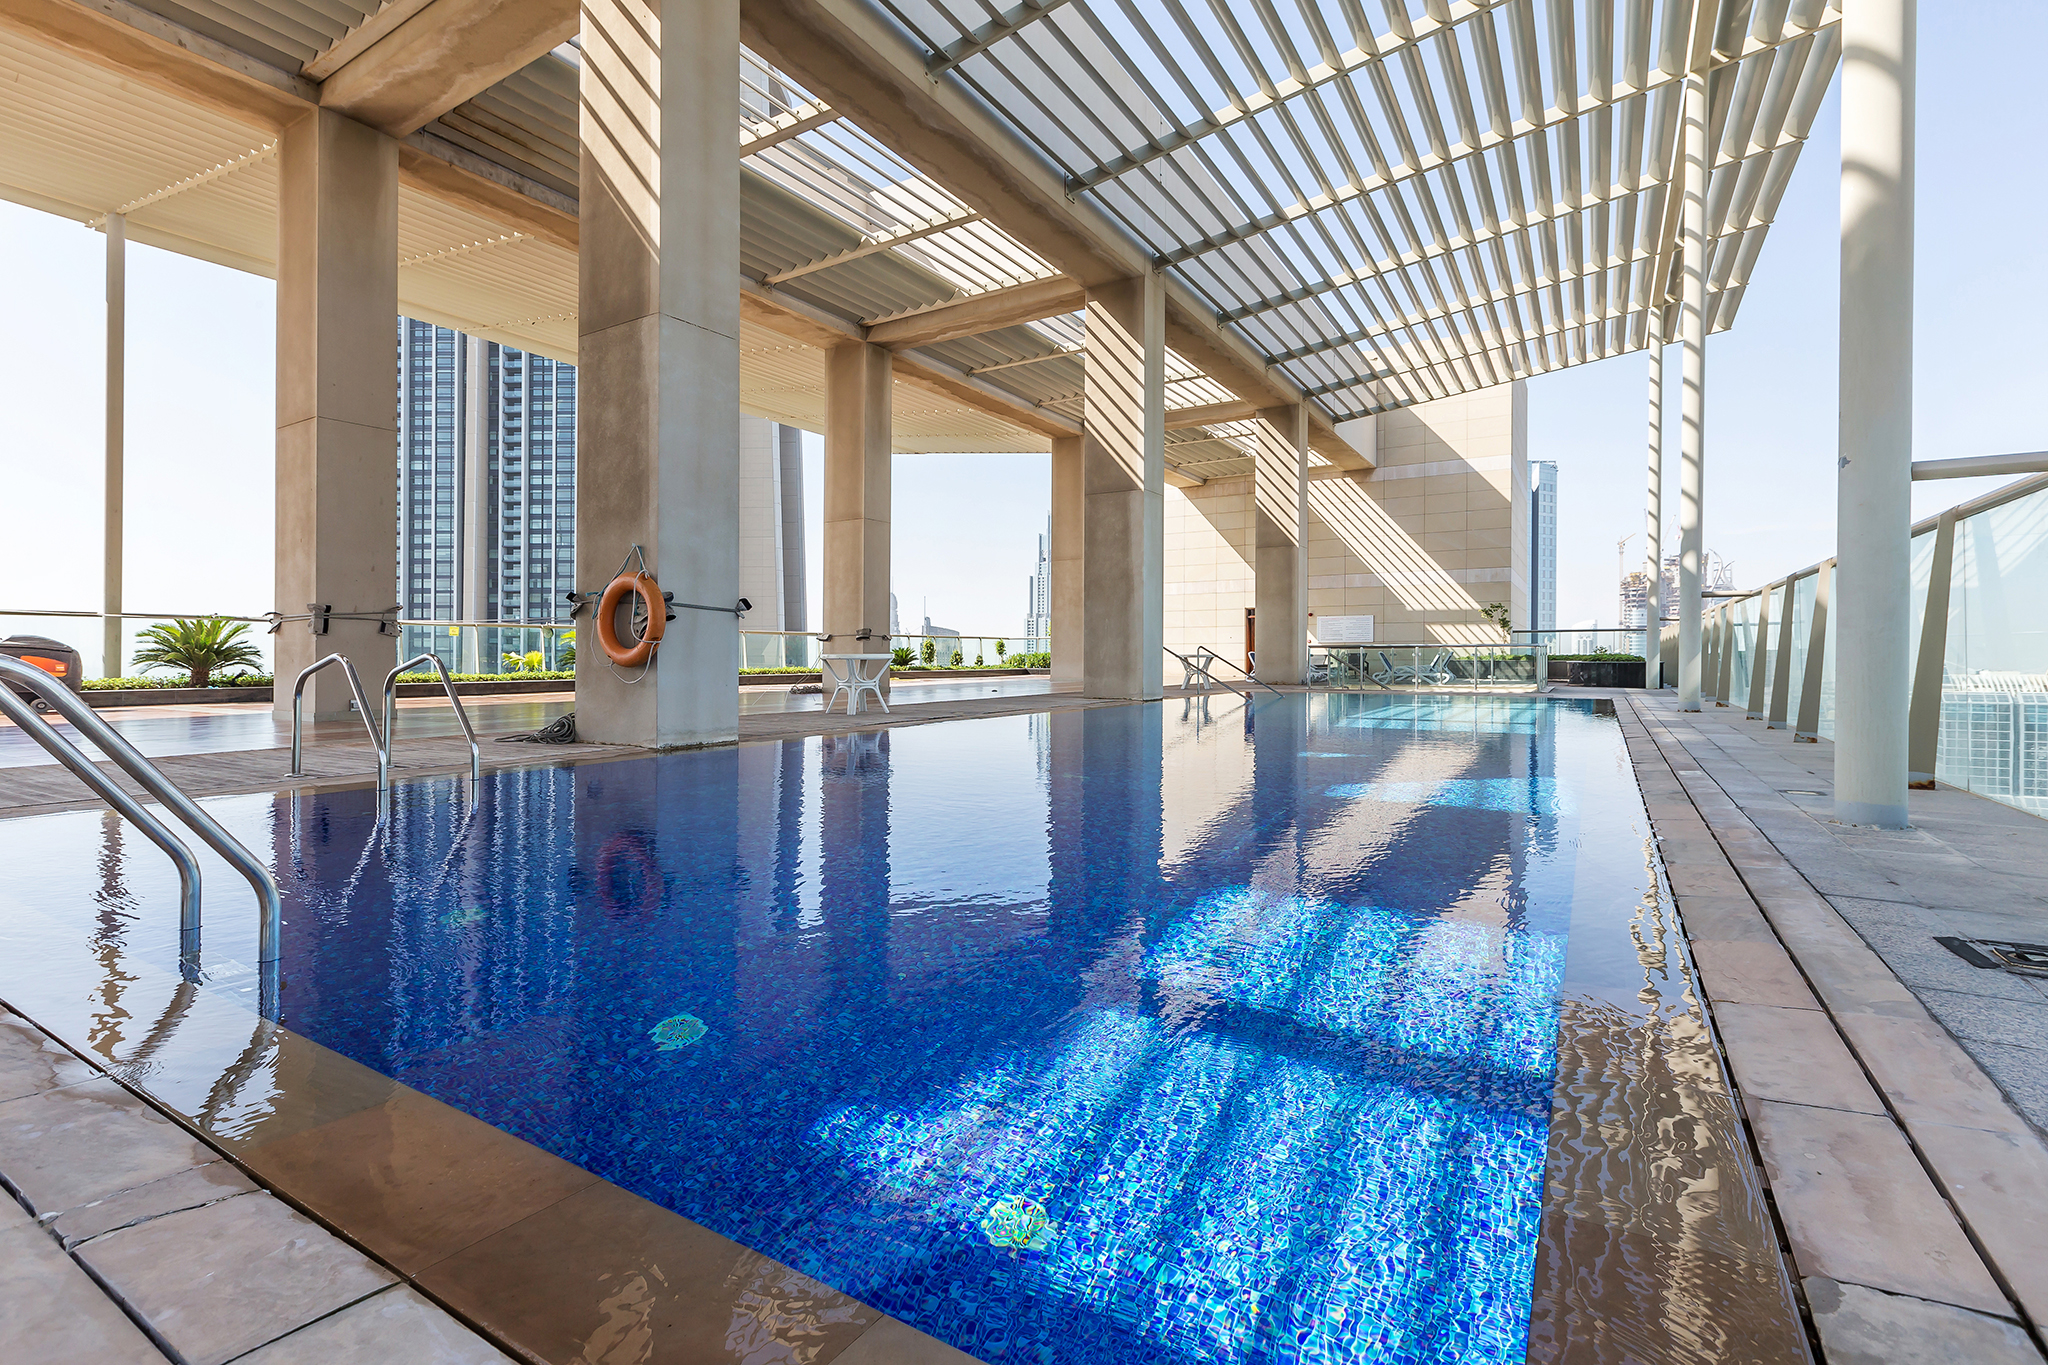 There are not one but TWO outdoor, temperature controlled pools in the building, with spectacular views